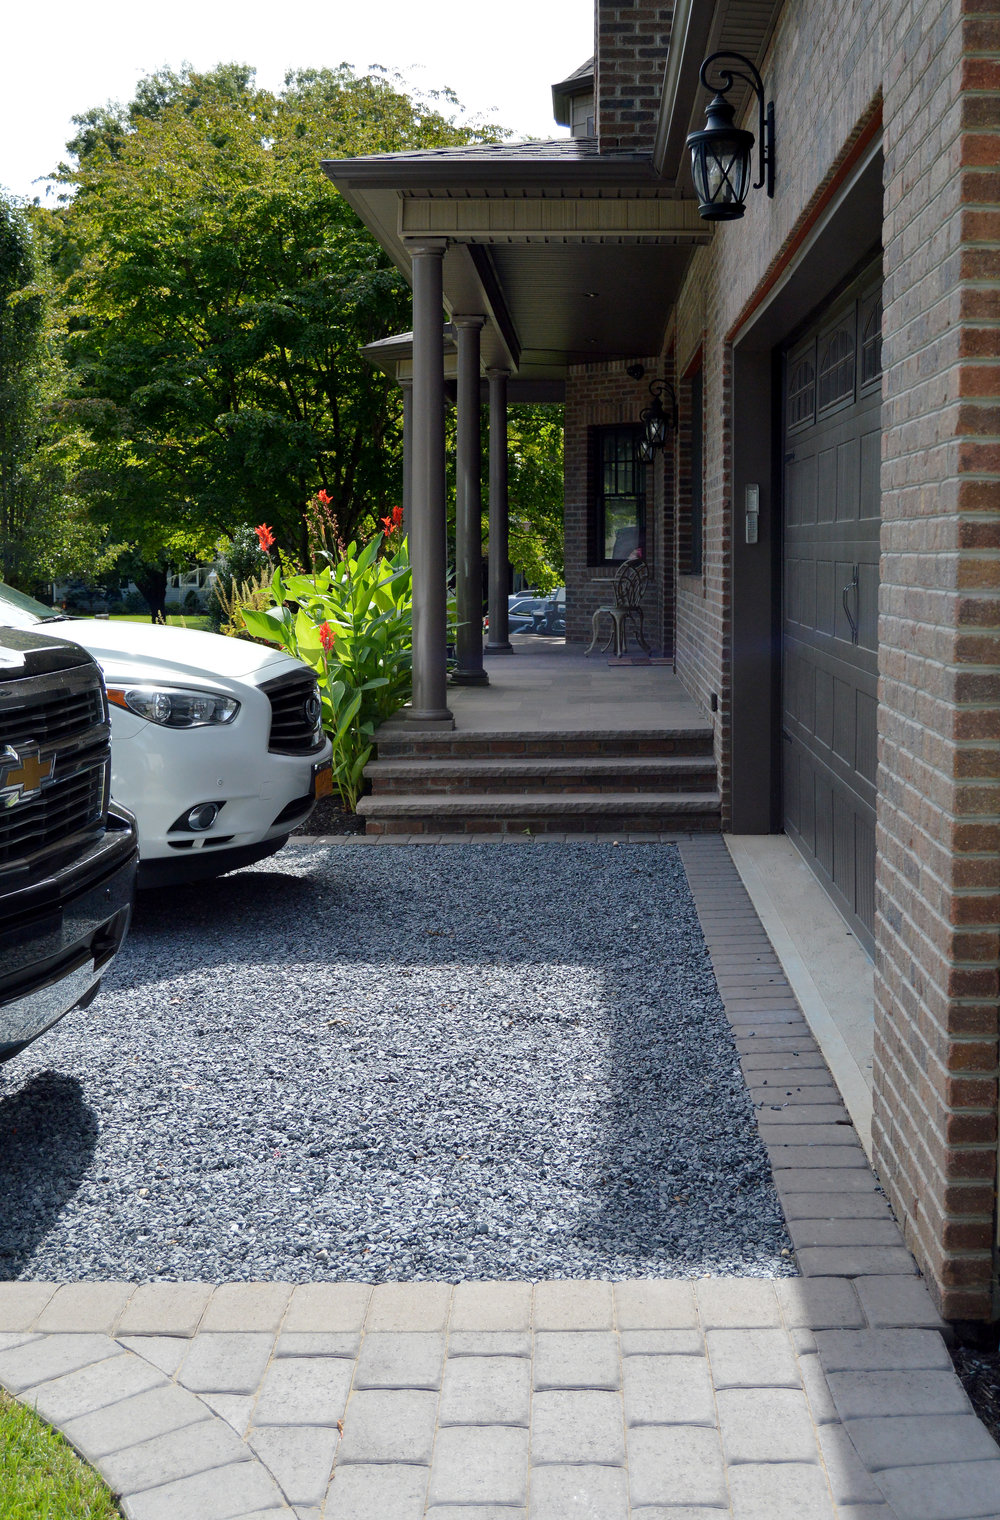 Smithtown, NY driveway with gravel and pavers